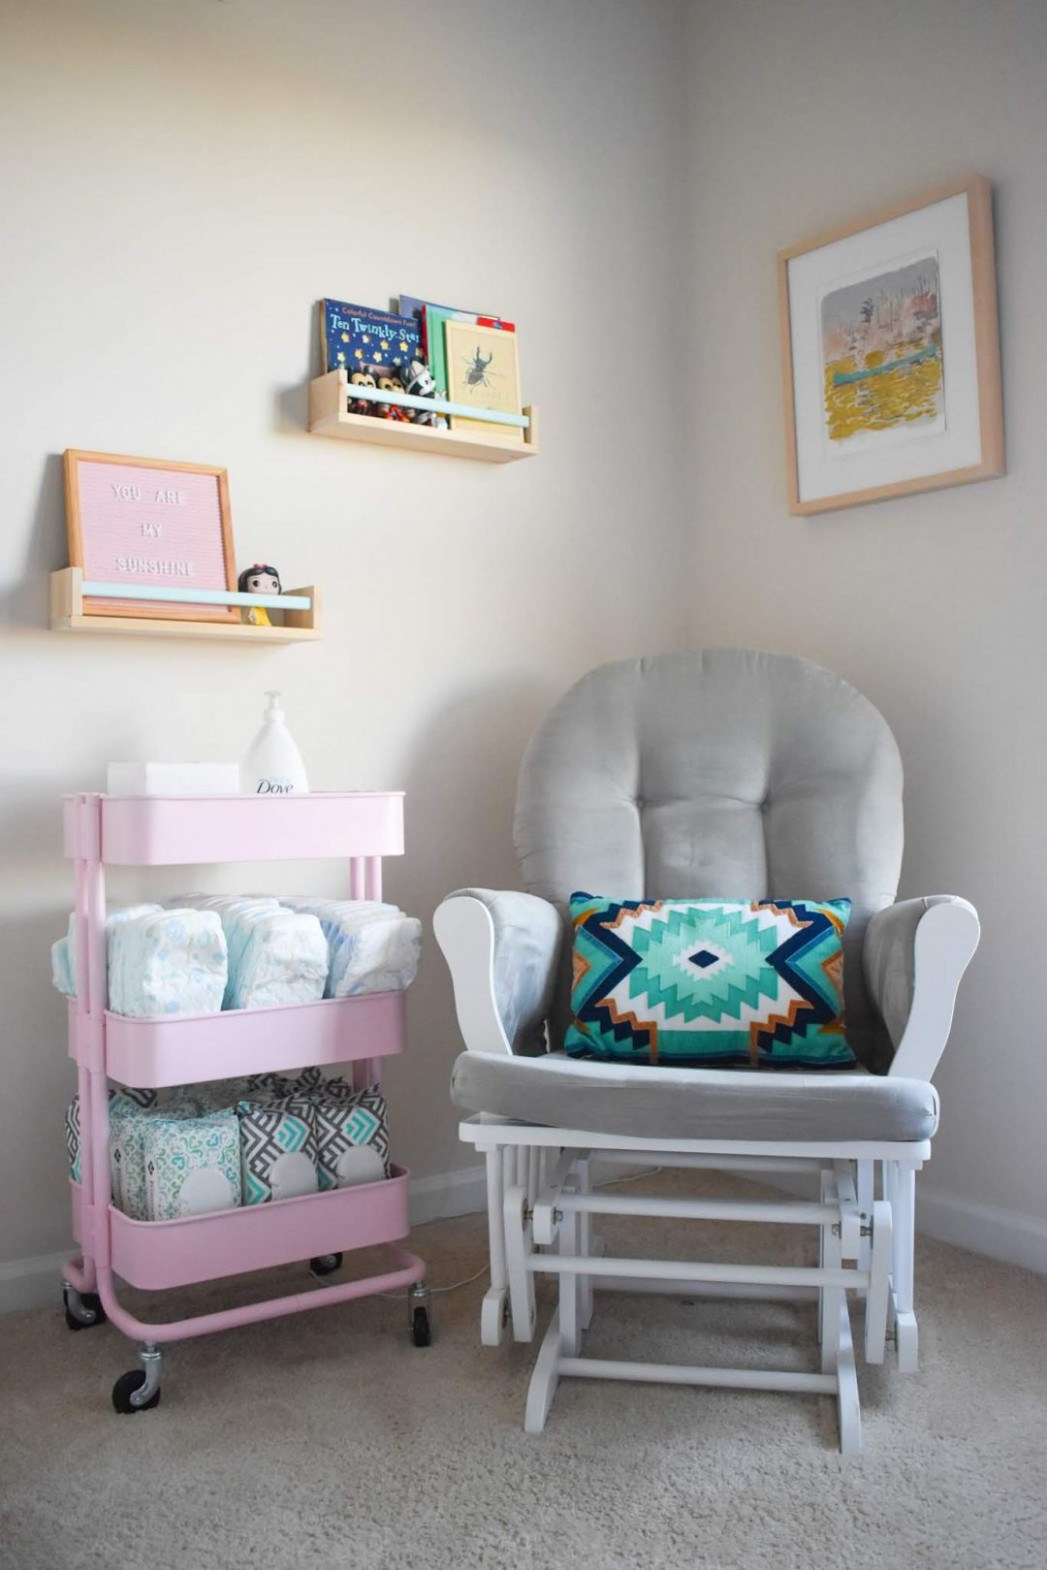 12 Ikea Hacks for a Modern Baby Nursery • Our Little Chaos - Baby Room Hacks